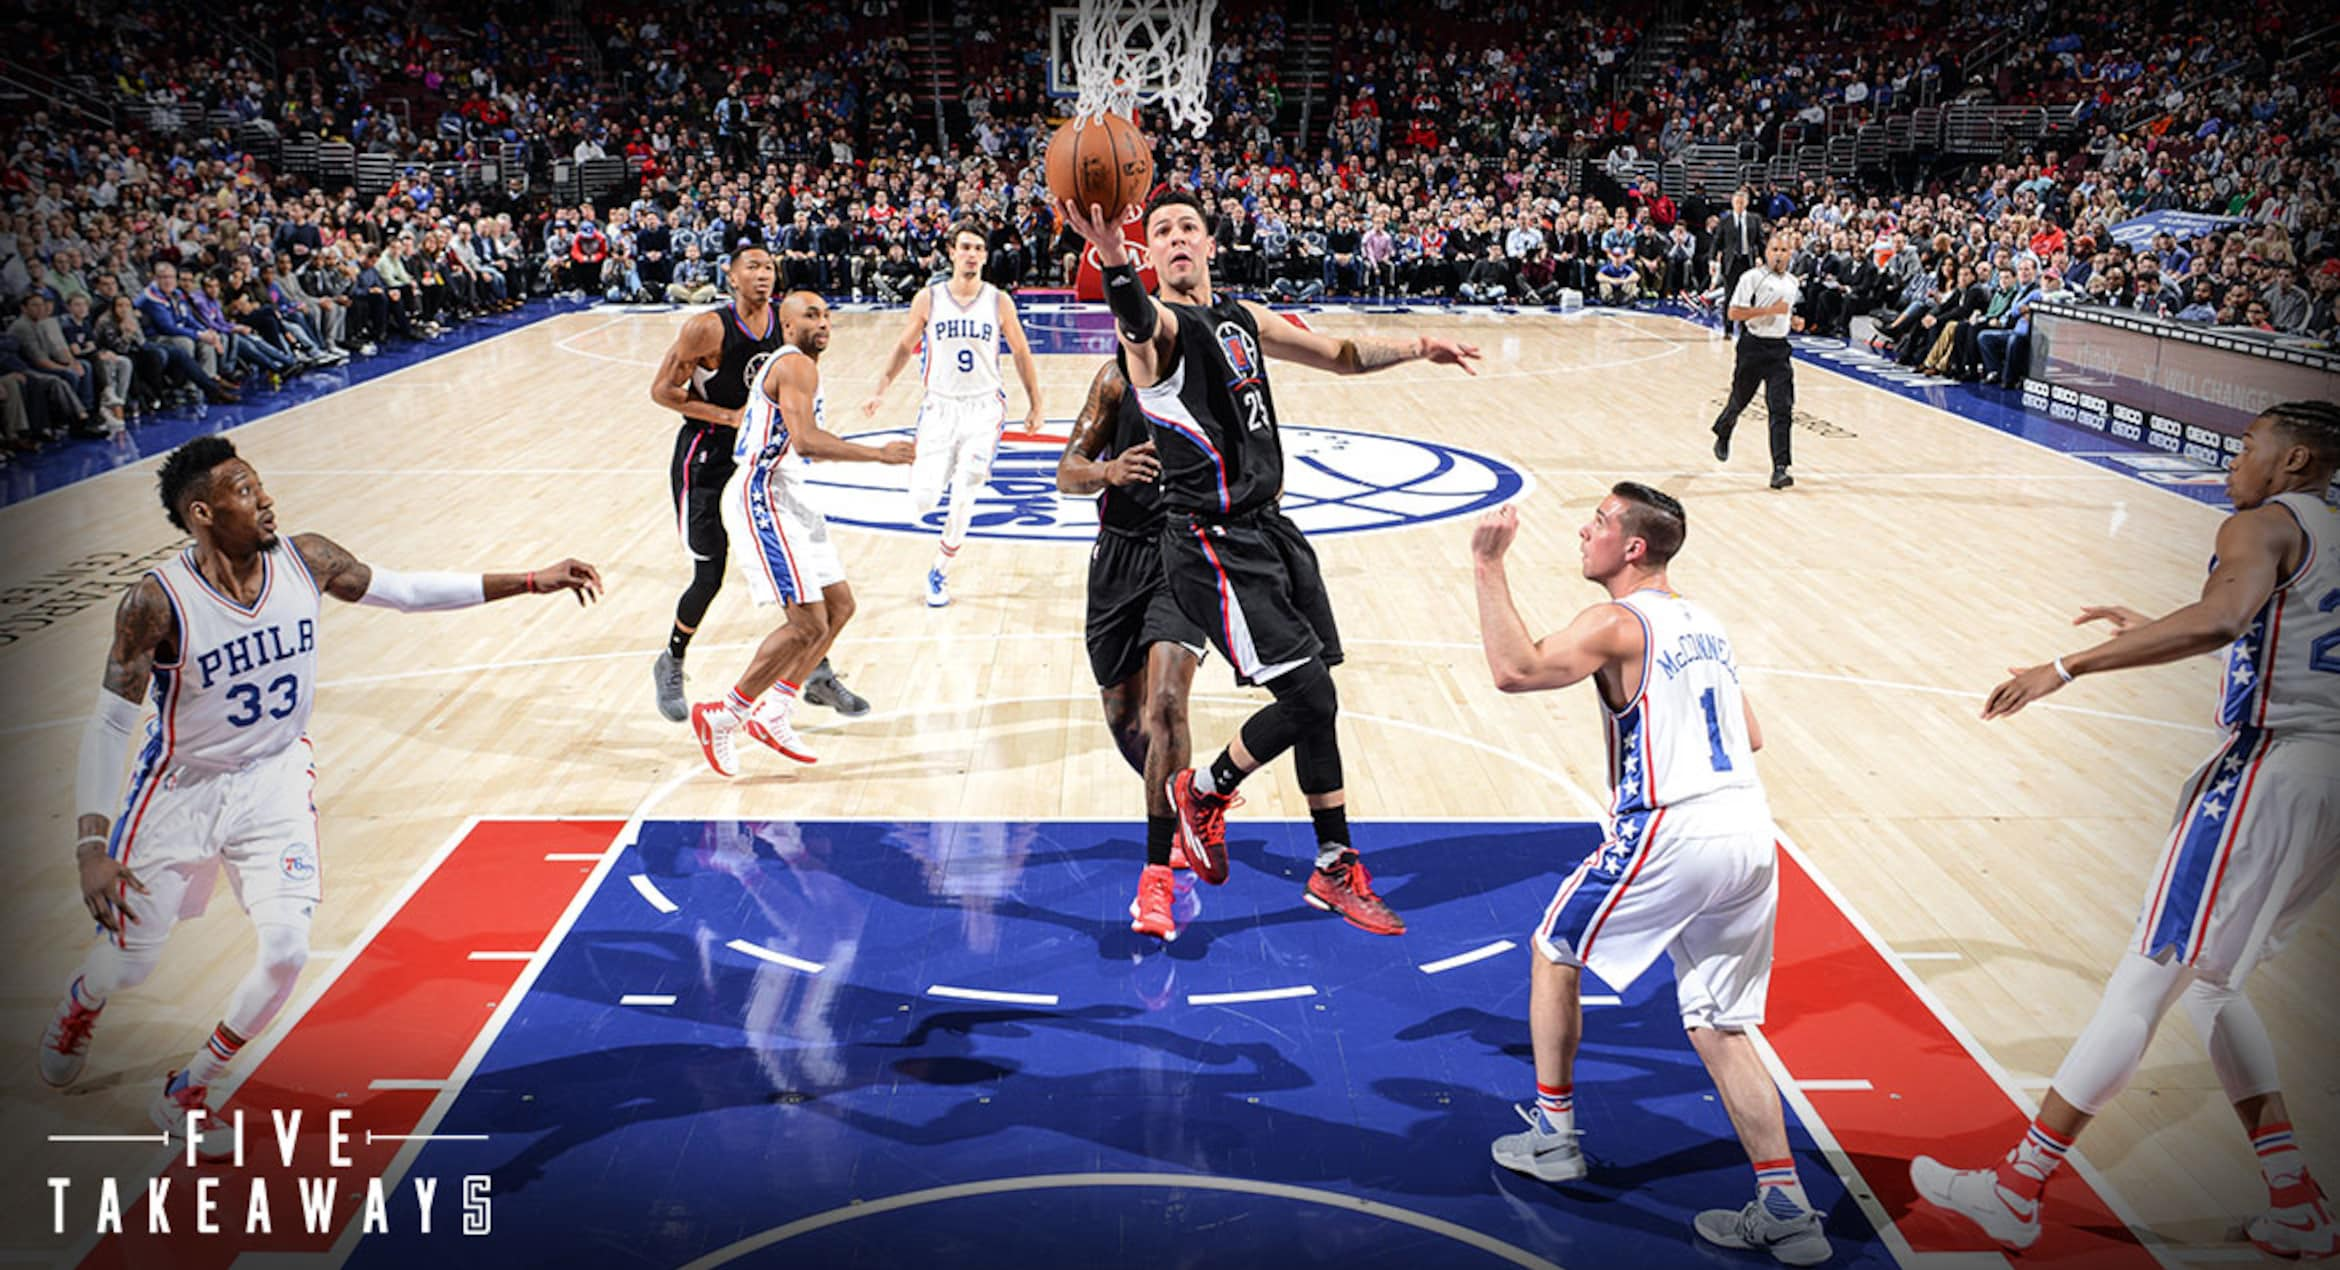 Five Takeaways: Second Half Falls Apart As Clippers Fall To 76ers